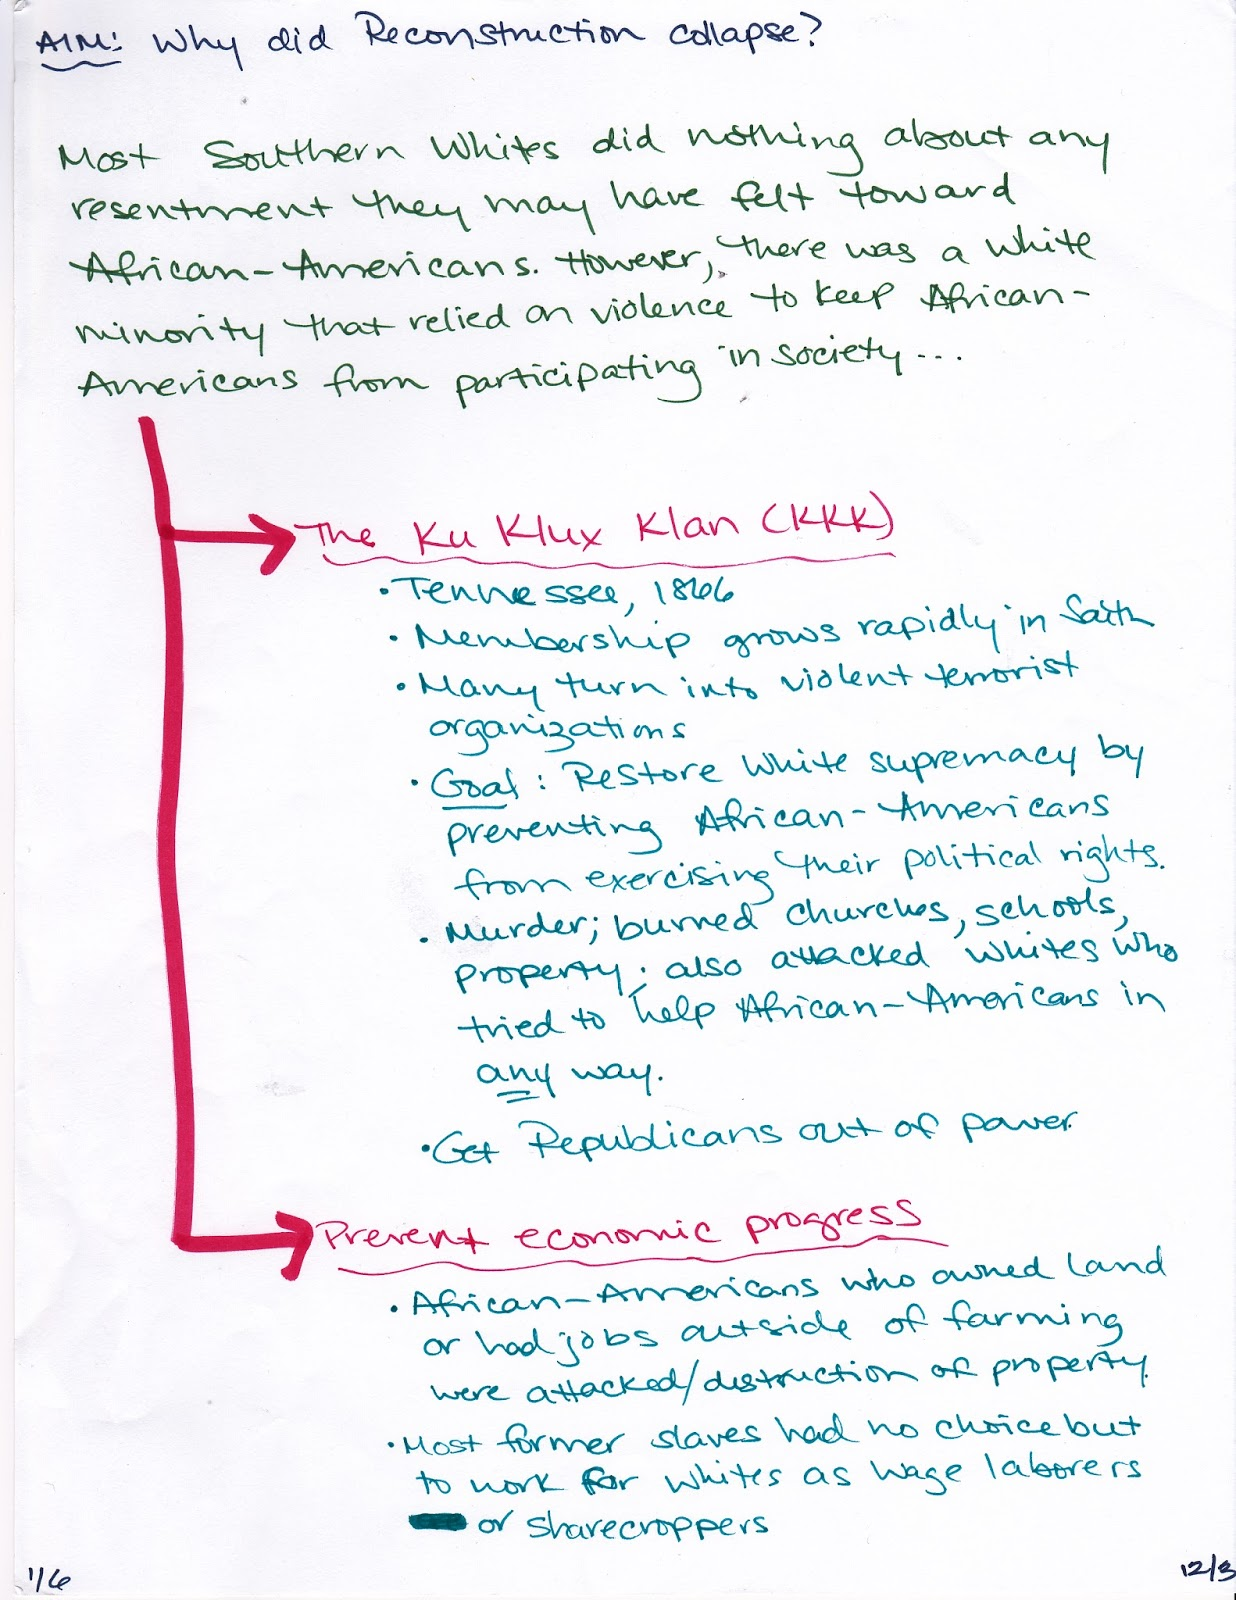 Us history ch12 sec 1 notes college paper writing service us history ch12 sec 1 notes quizlet provides section 1 world history chapter 12 activities publicscrutiny Choice Image